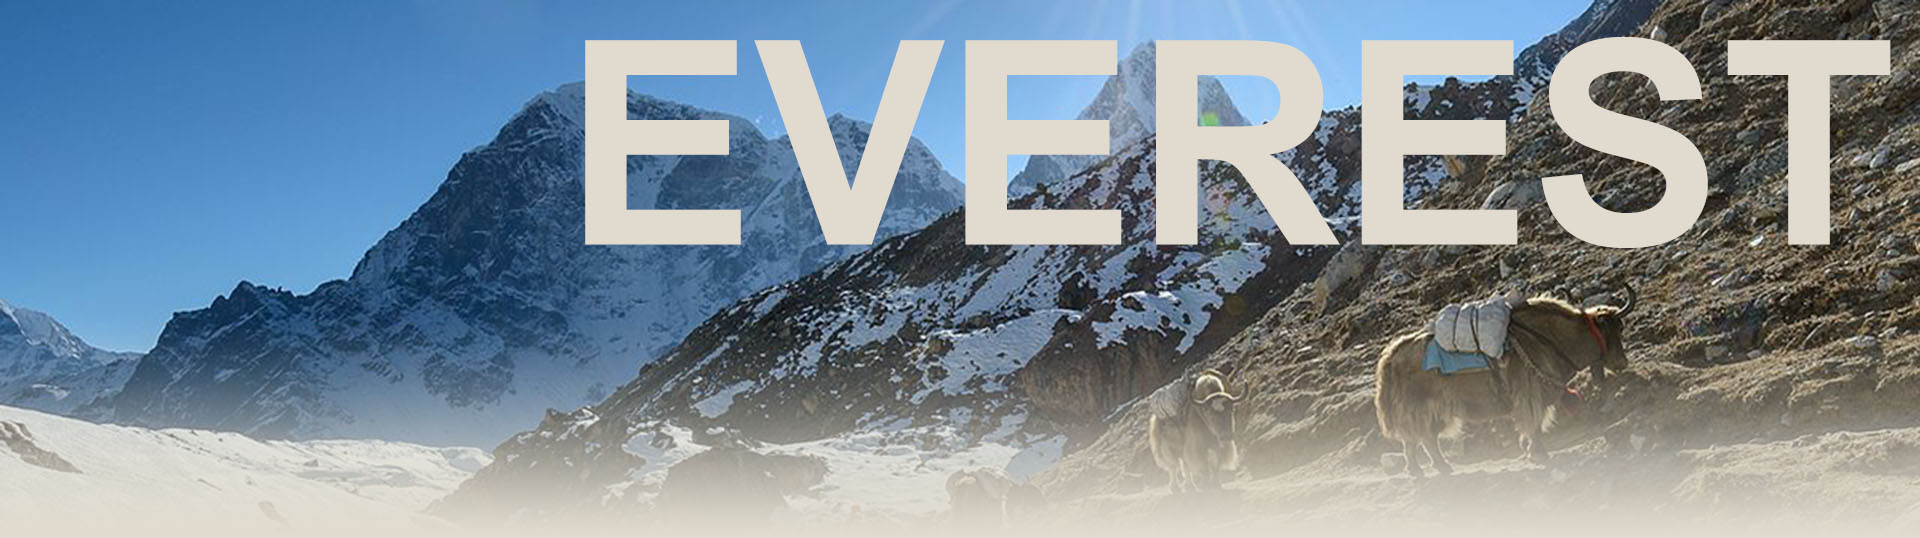 Trekking Everest - EBC